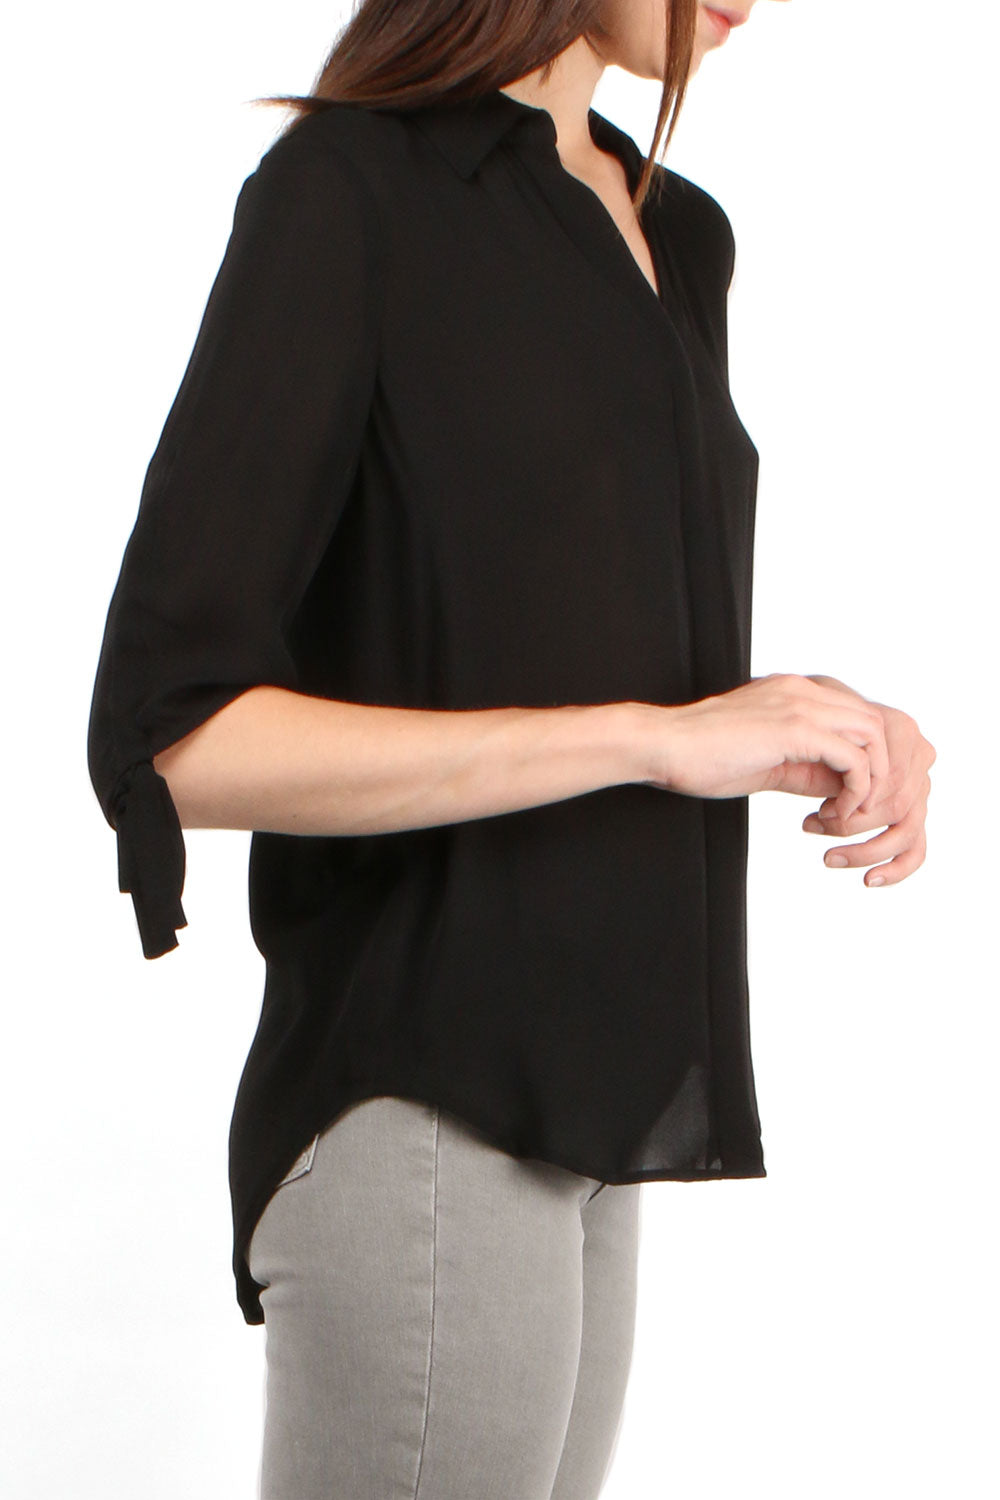 Isla Black Blouse